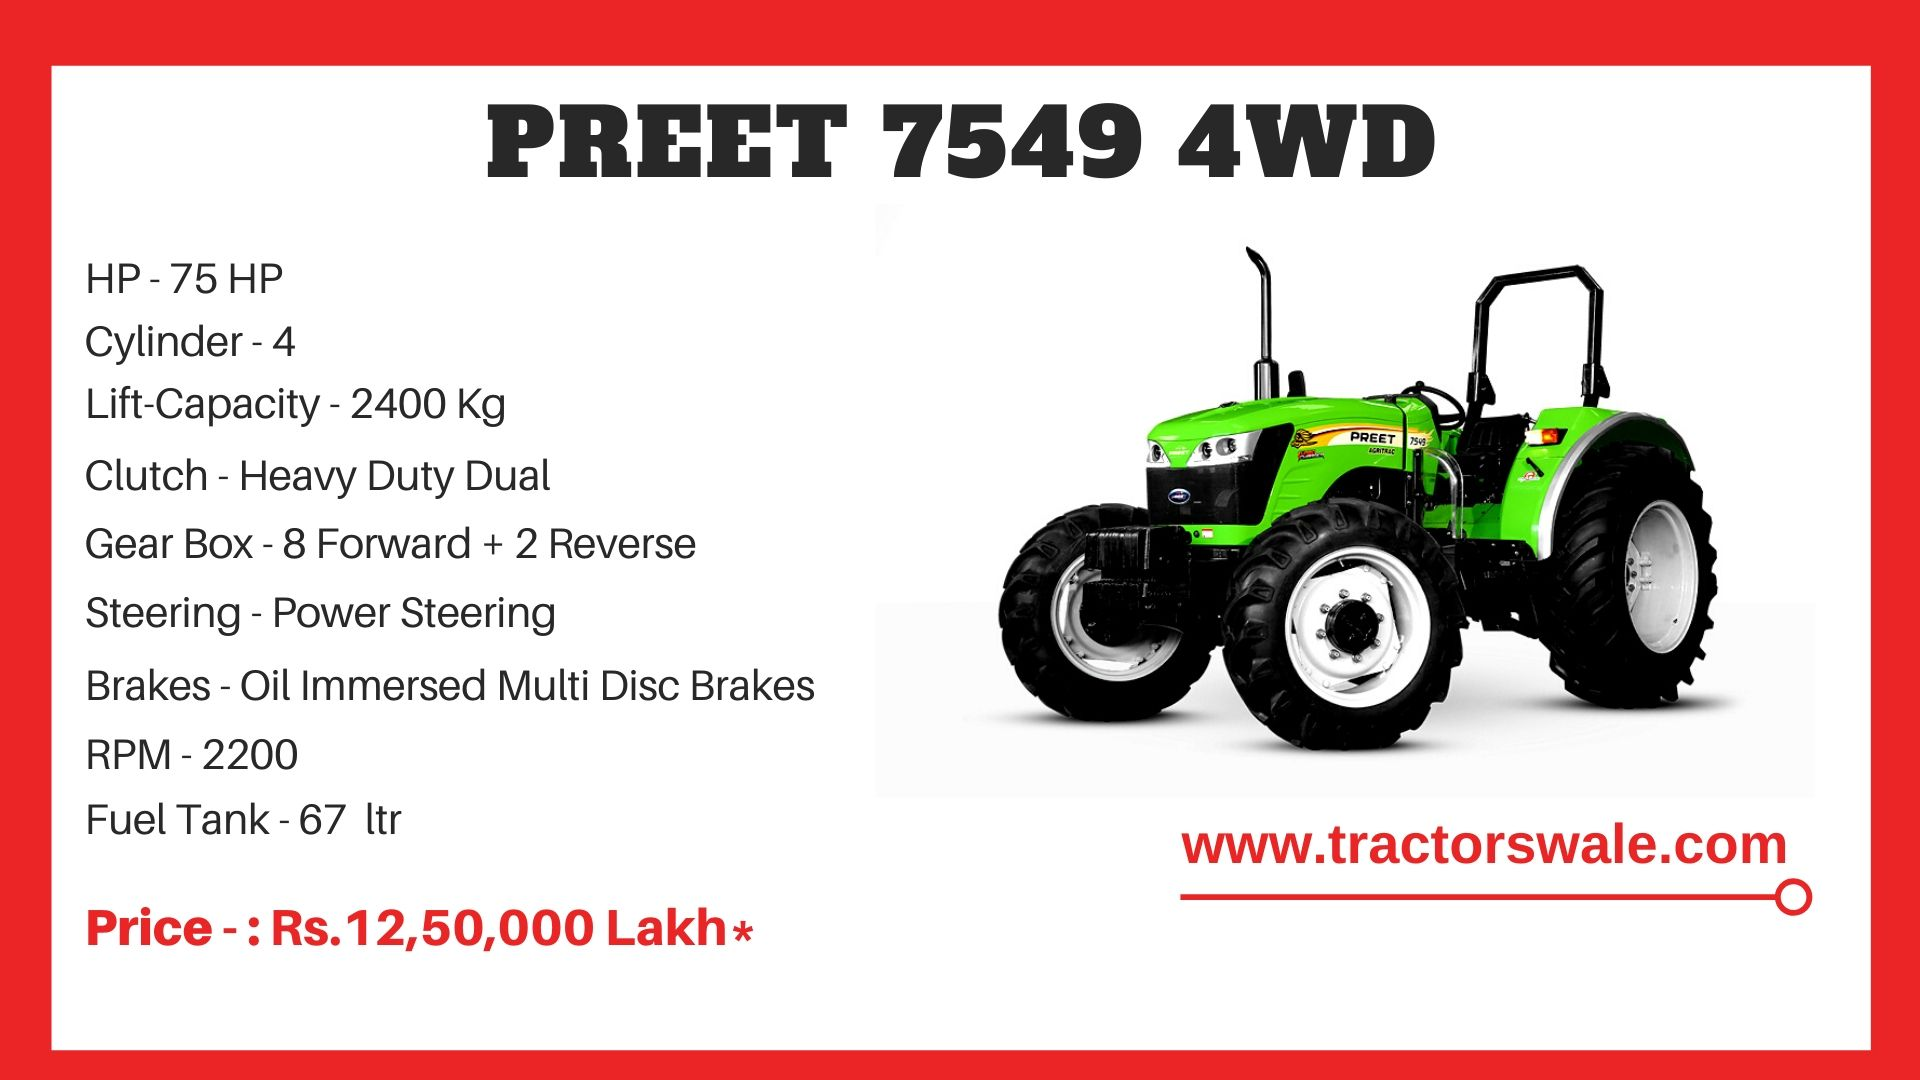 Preet 7549 4WD Tractor Price